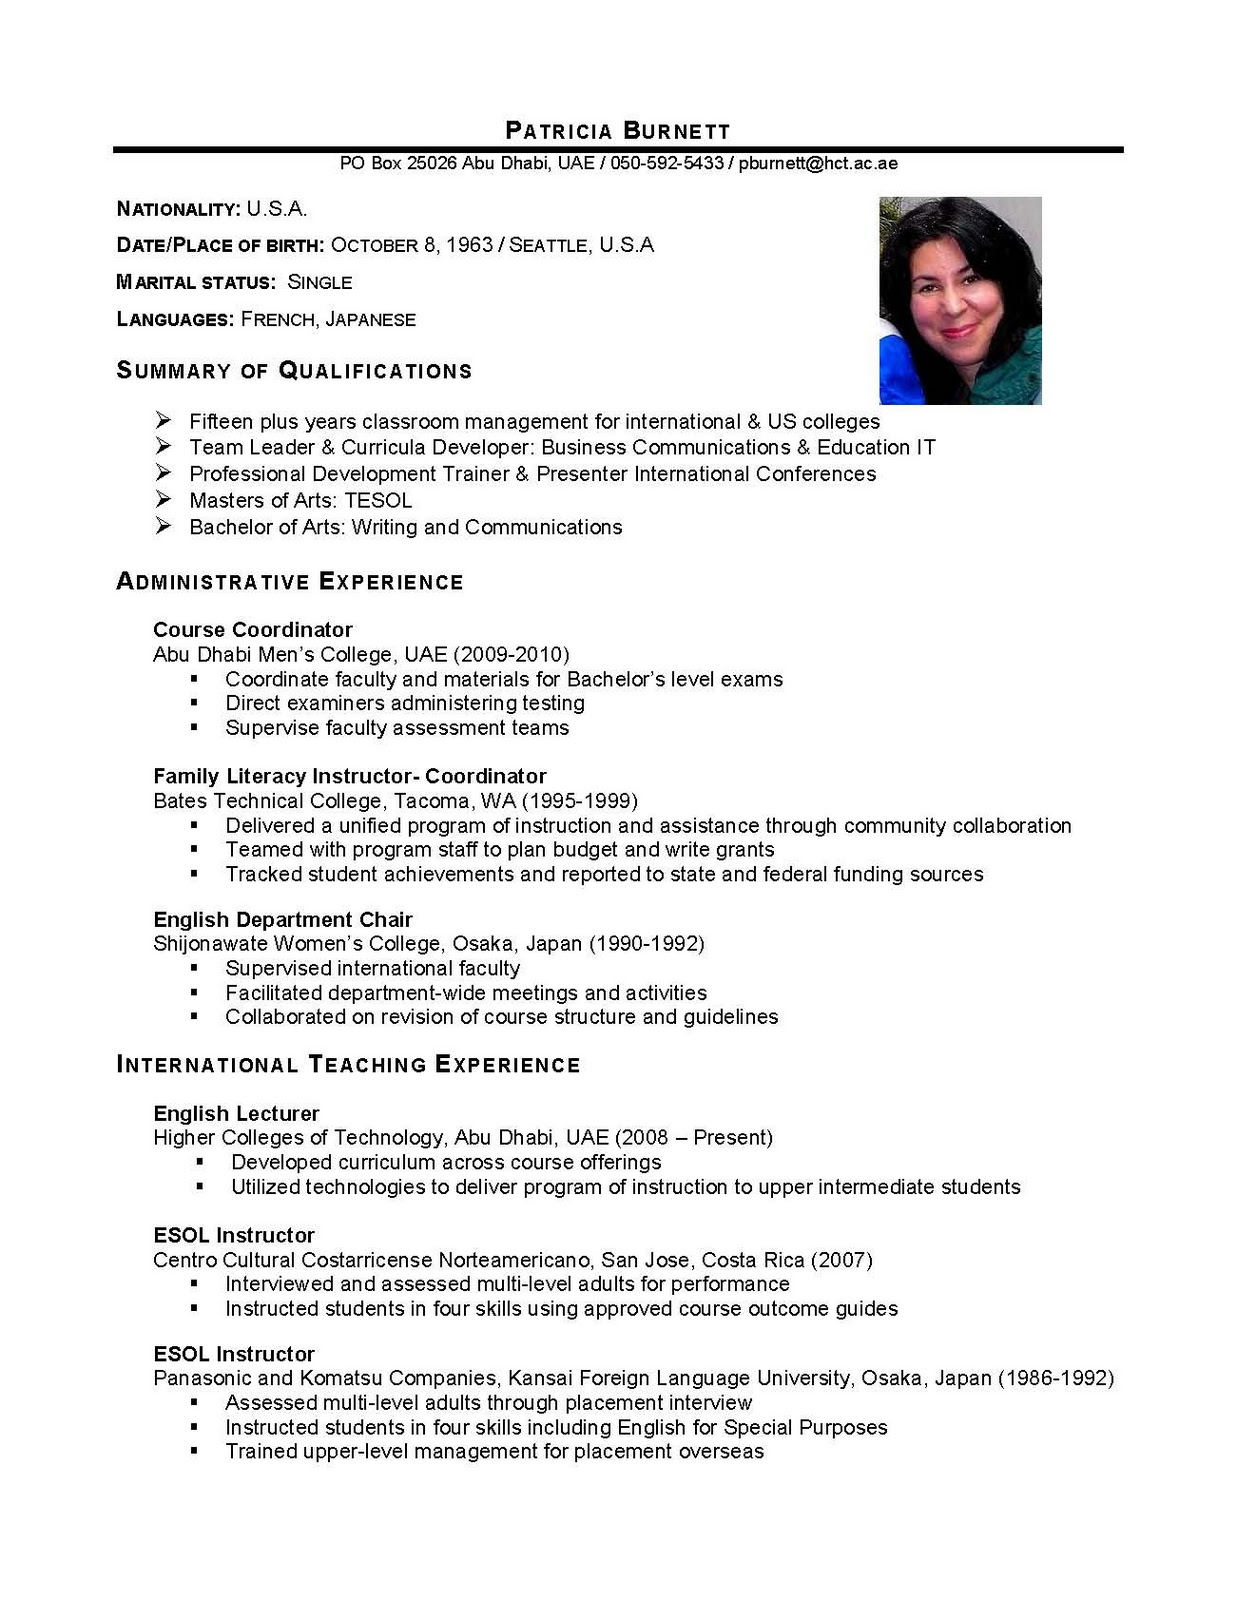 Resume Writing Services Houston - Resumes By Design